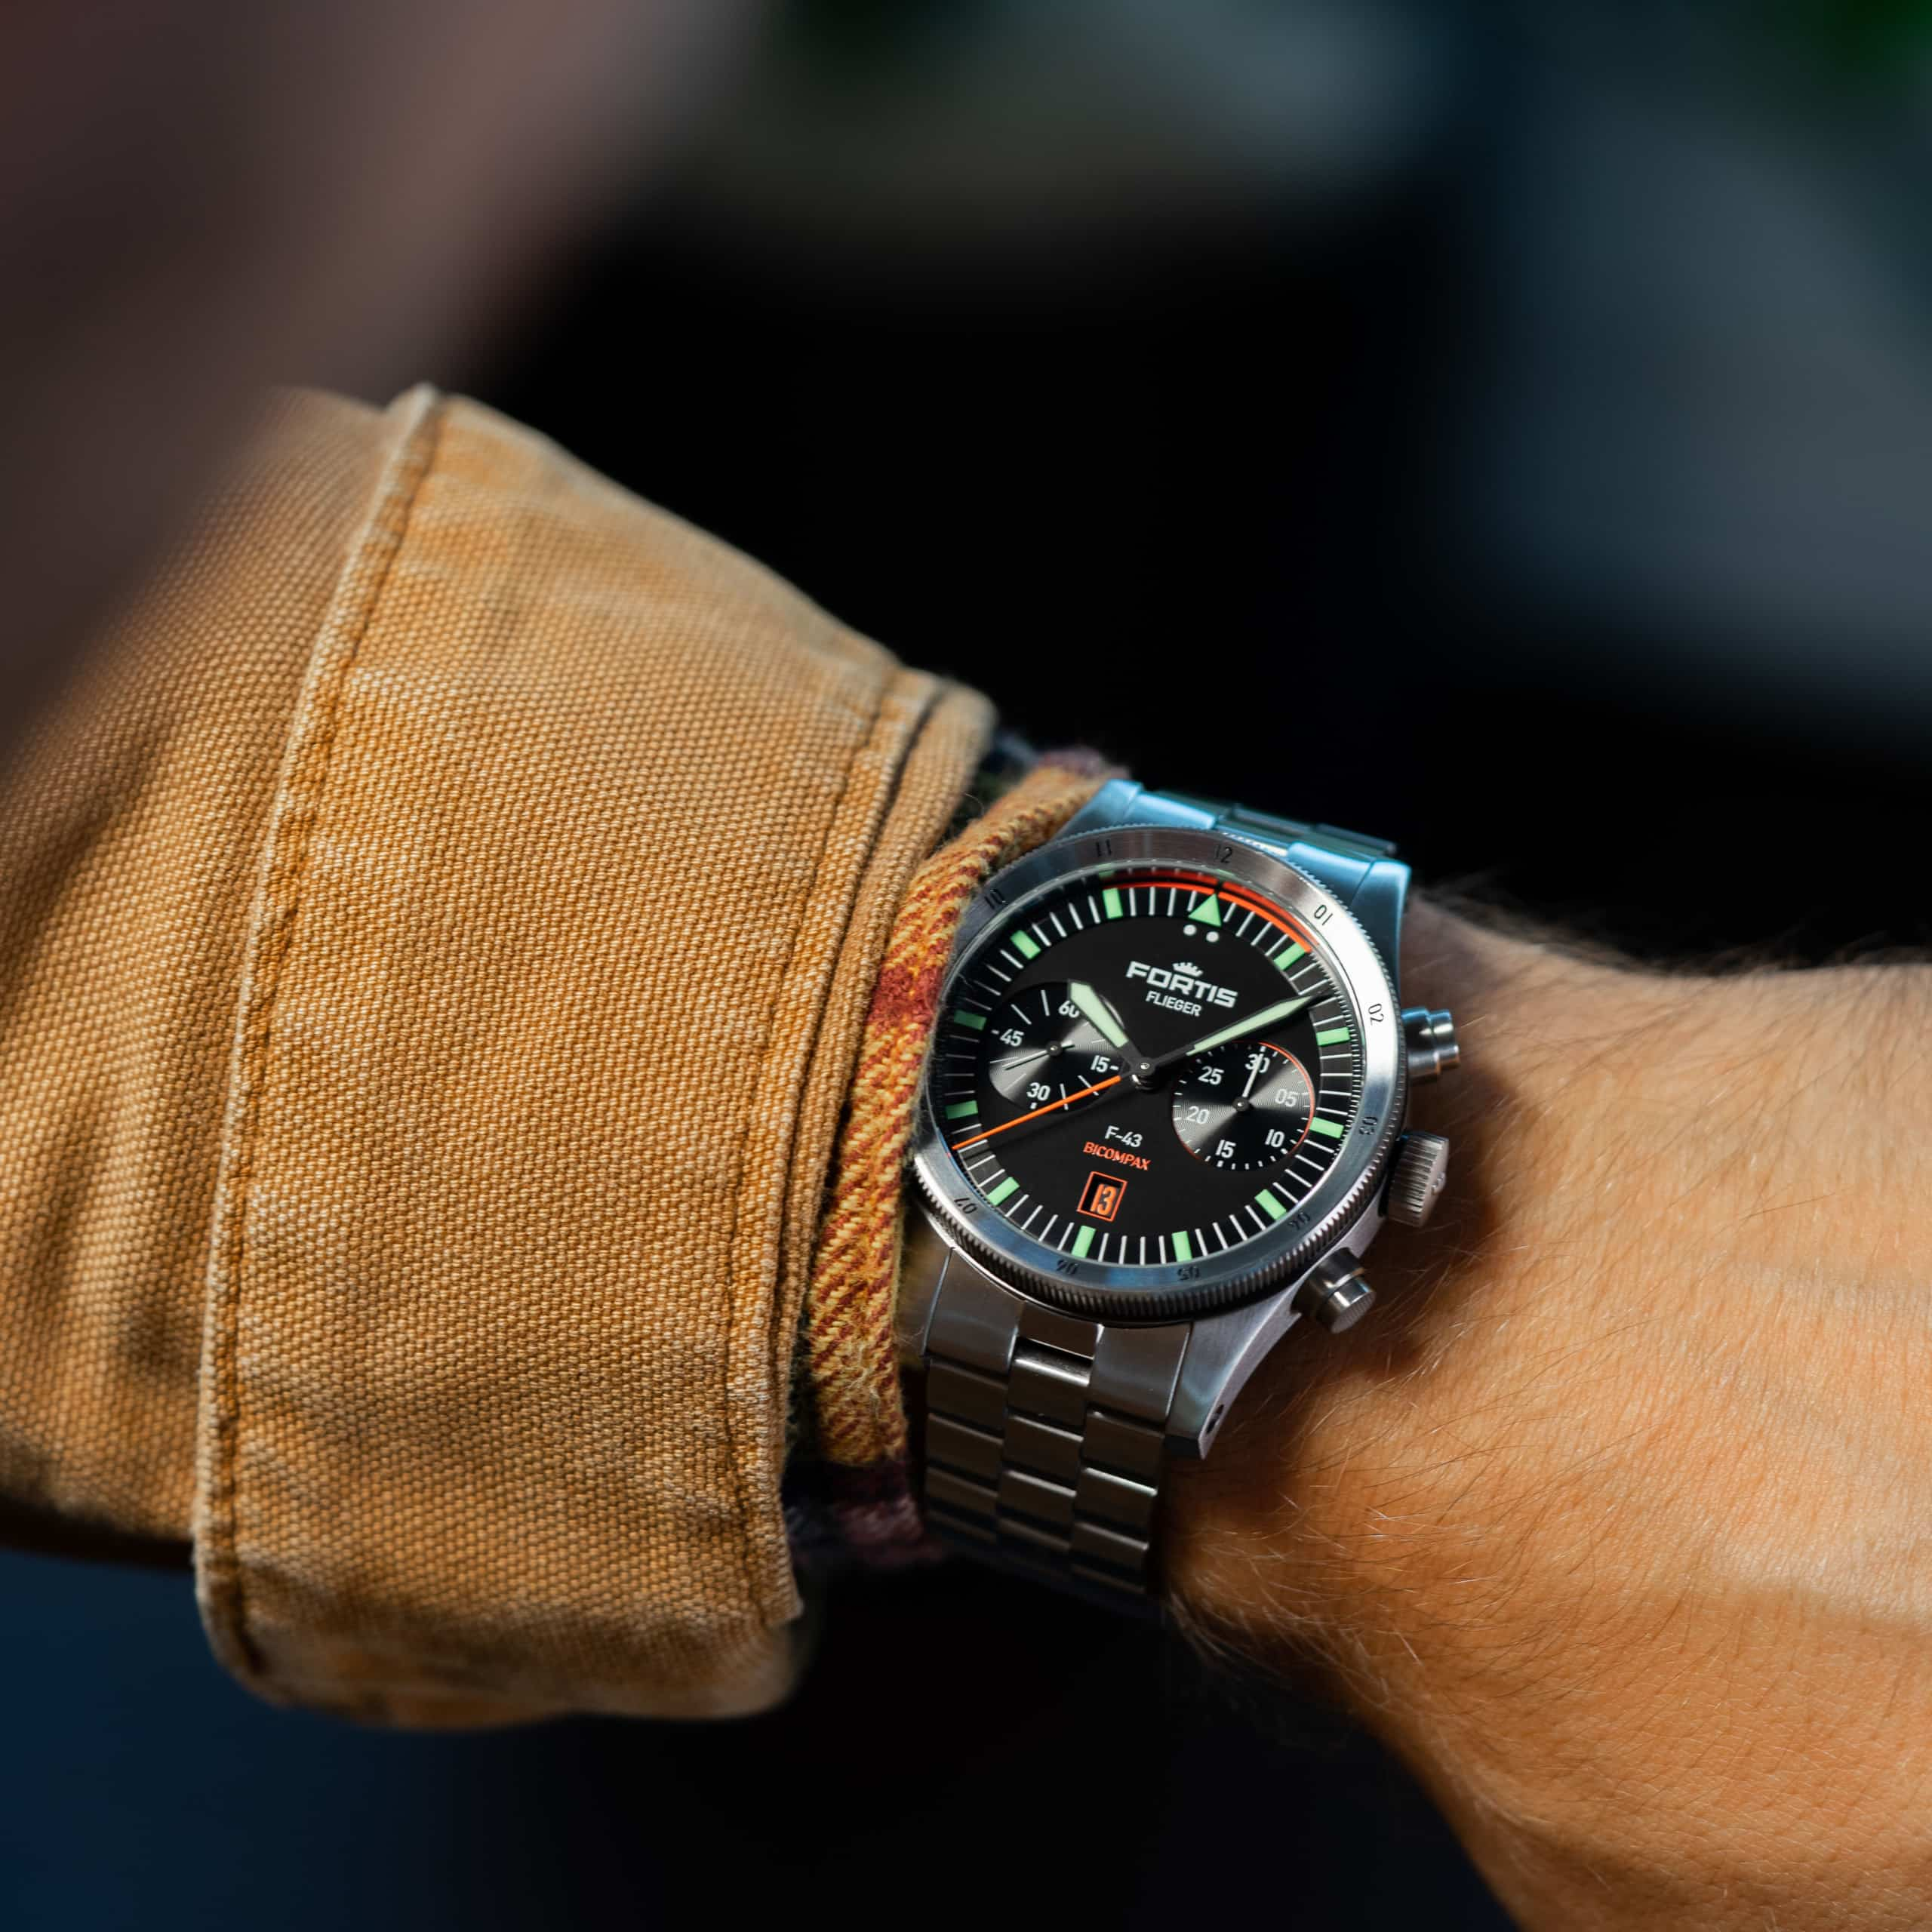 Introducing The Fortis Flieger F-43 Bicompax Chronograph